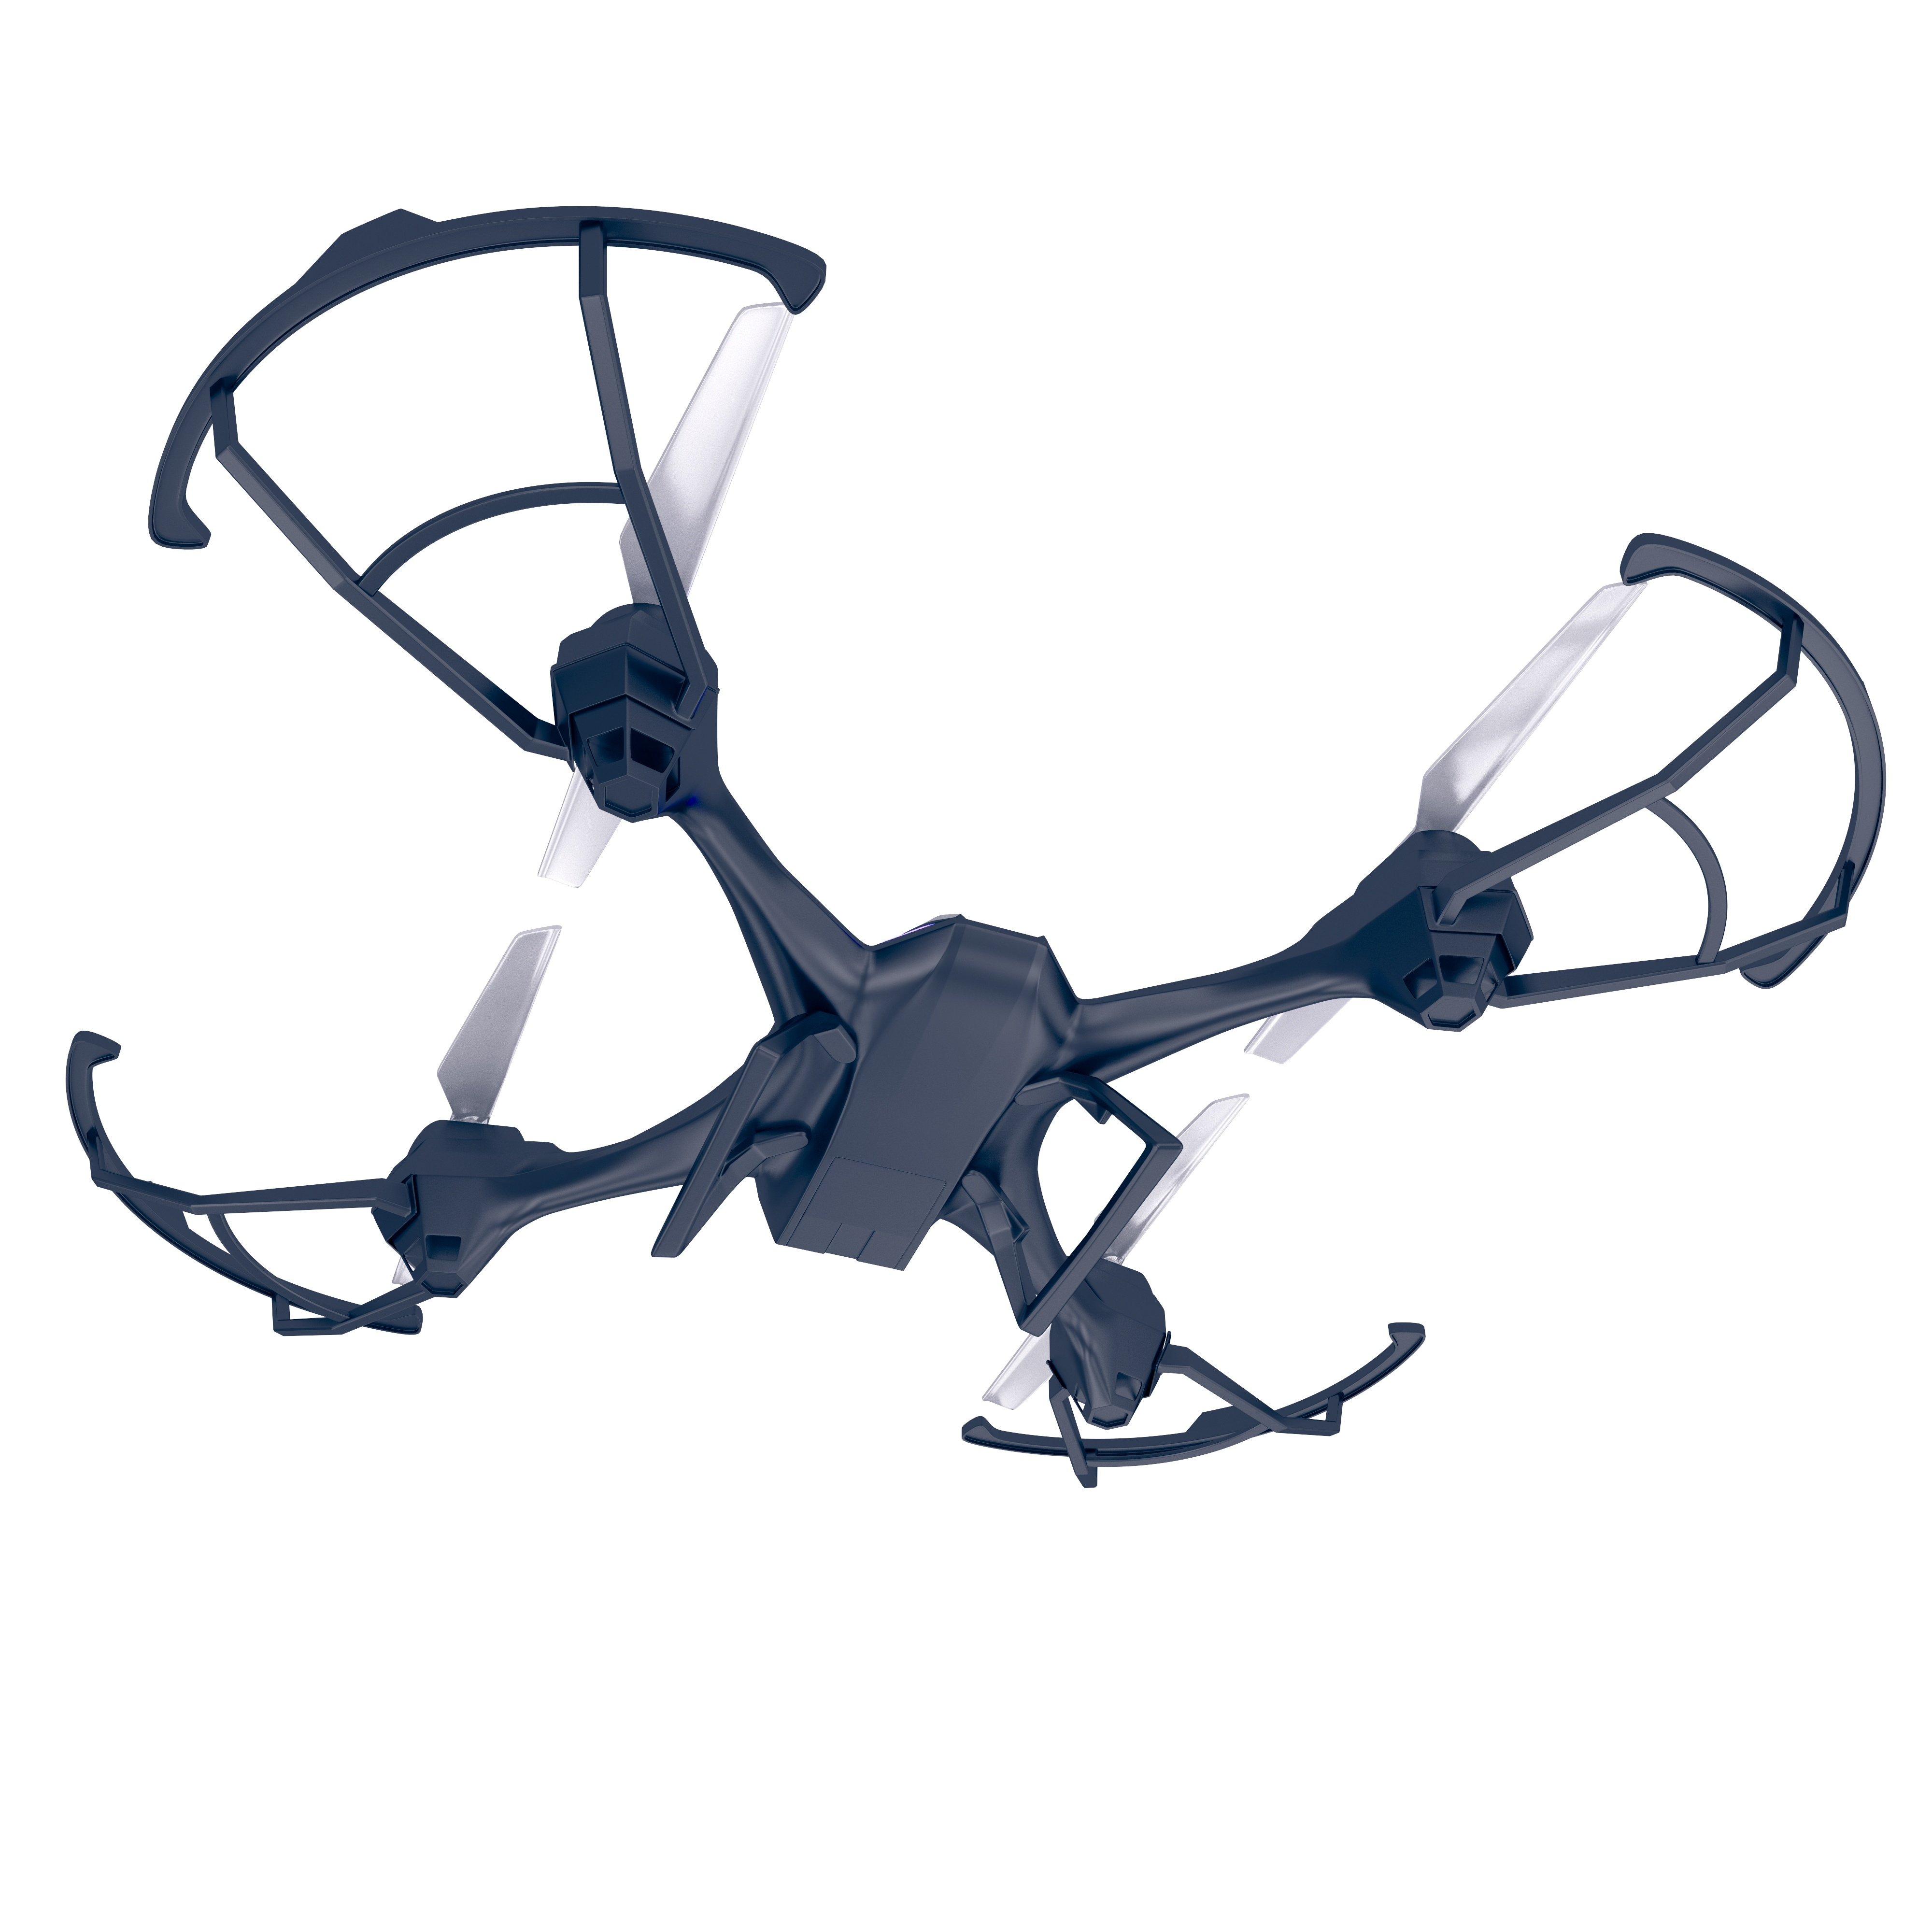 Drone quadrocopter. New tool for aerial photo and video. 3d illustration